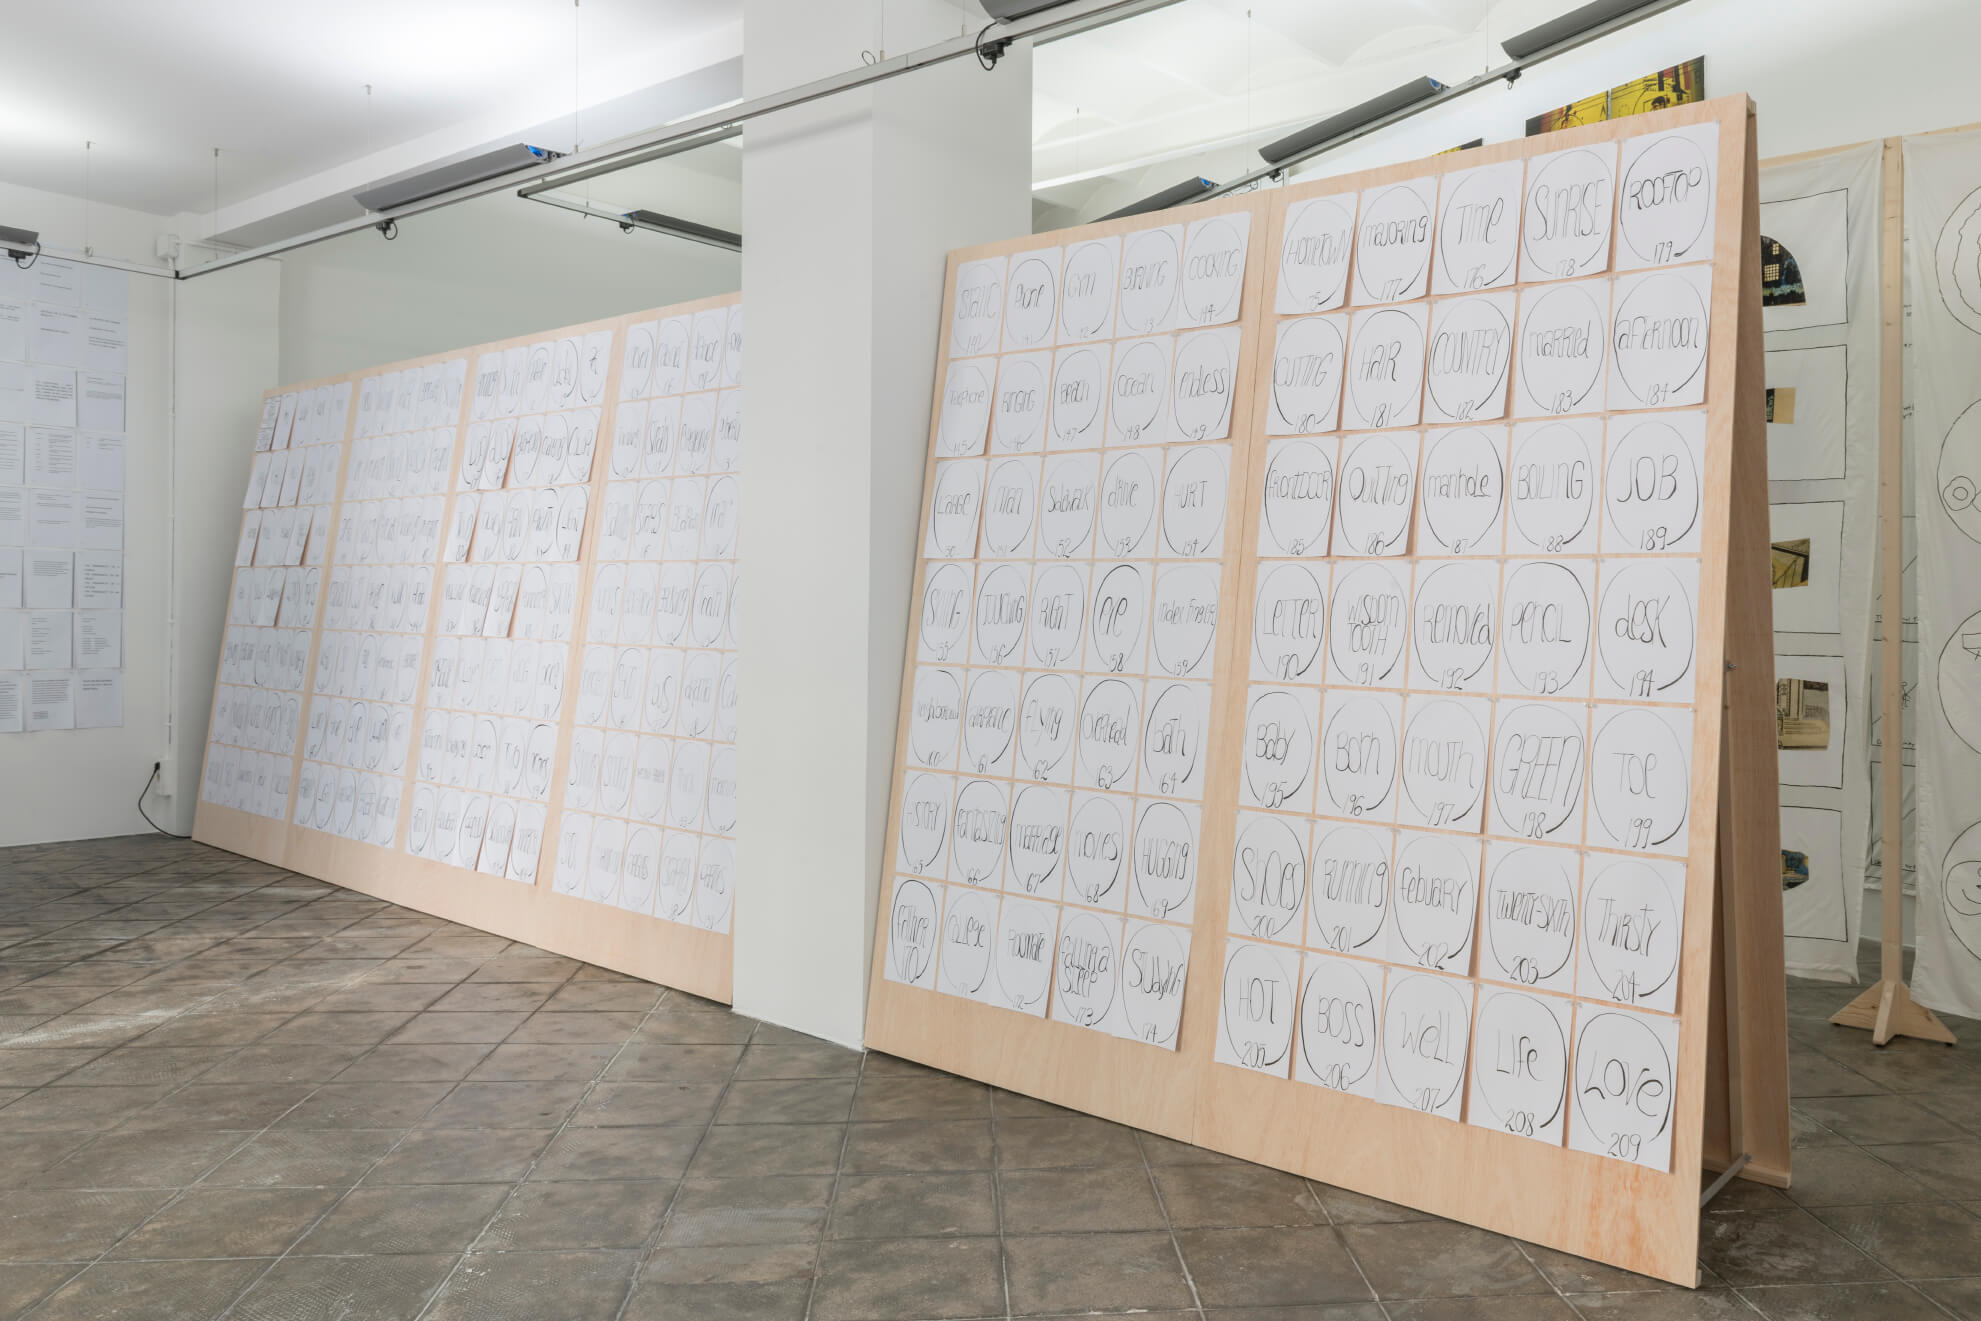 Untitled (269 words from the birth to death list), 2018   Representing The Work   ProjecteSD